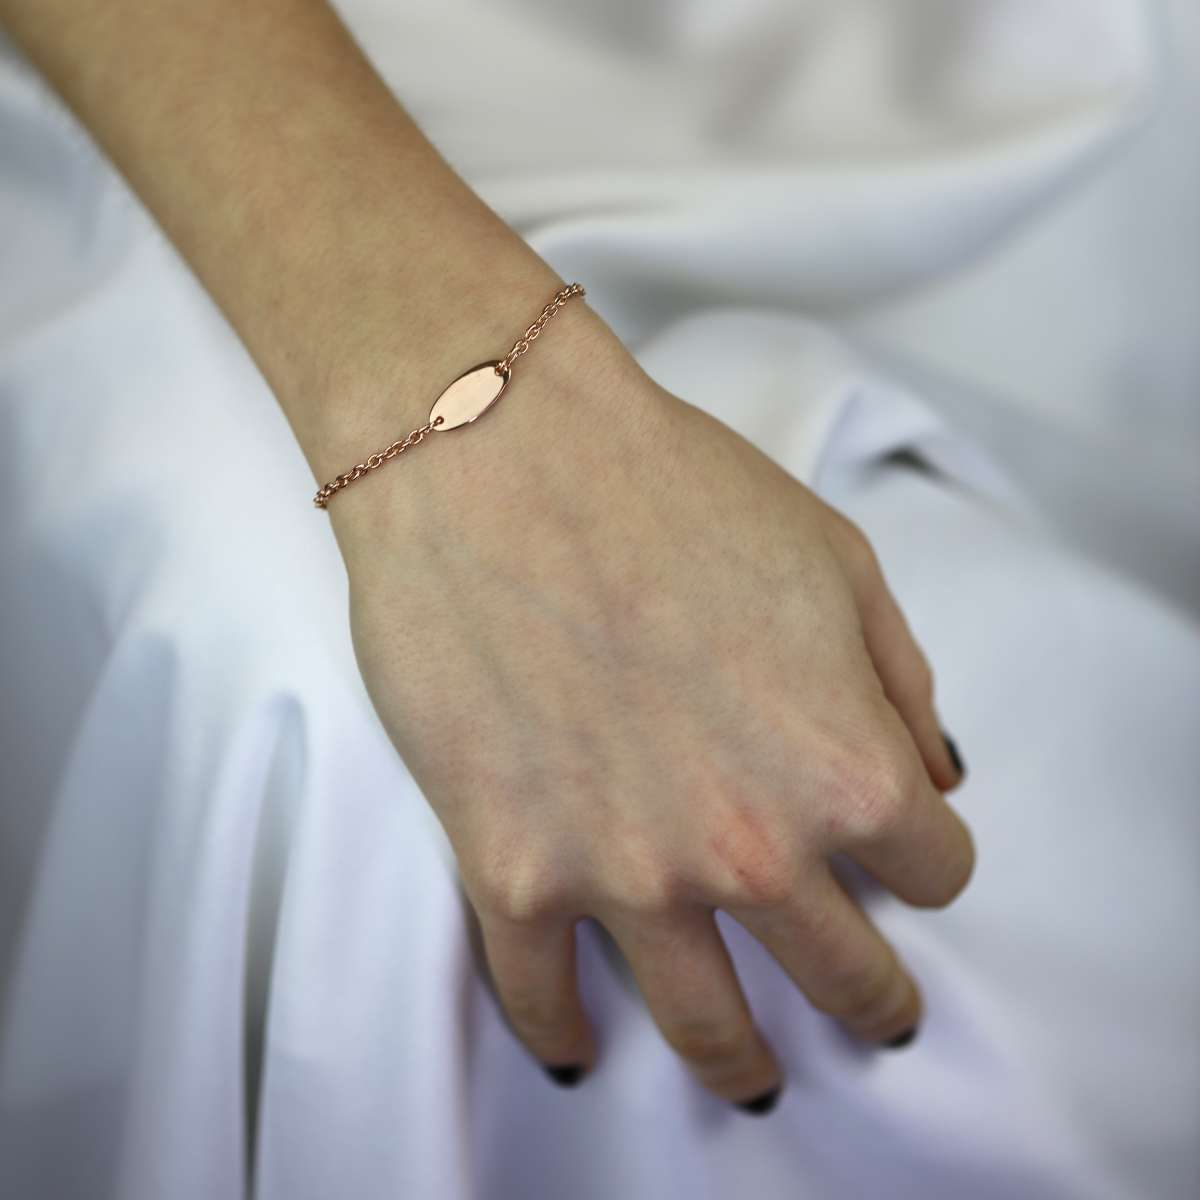 Alterative image for Rose Gold Plated Sterling Silver Engravable ID Bracelet 6 Inches